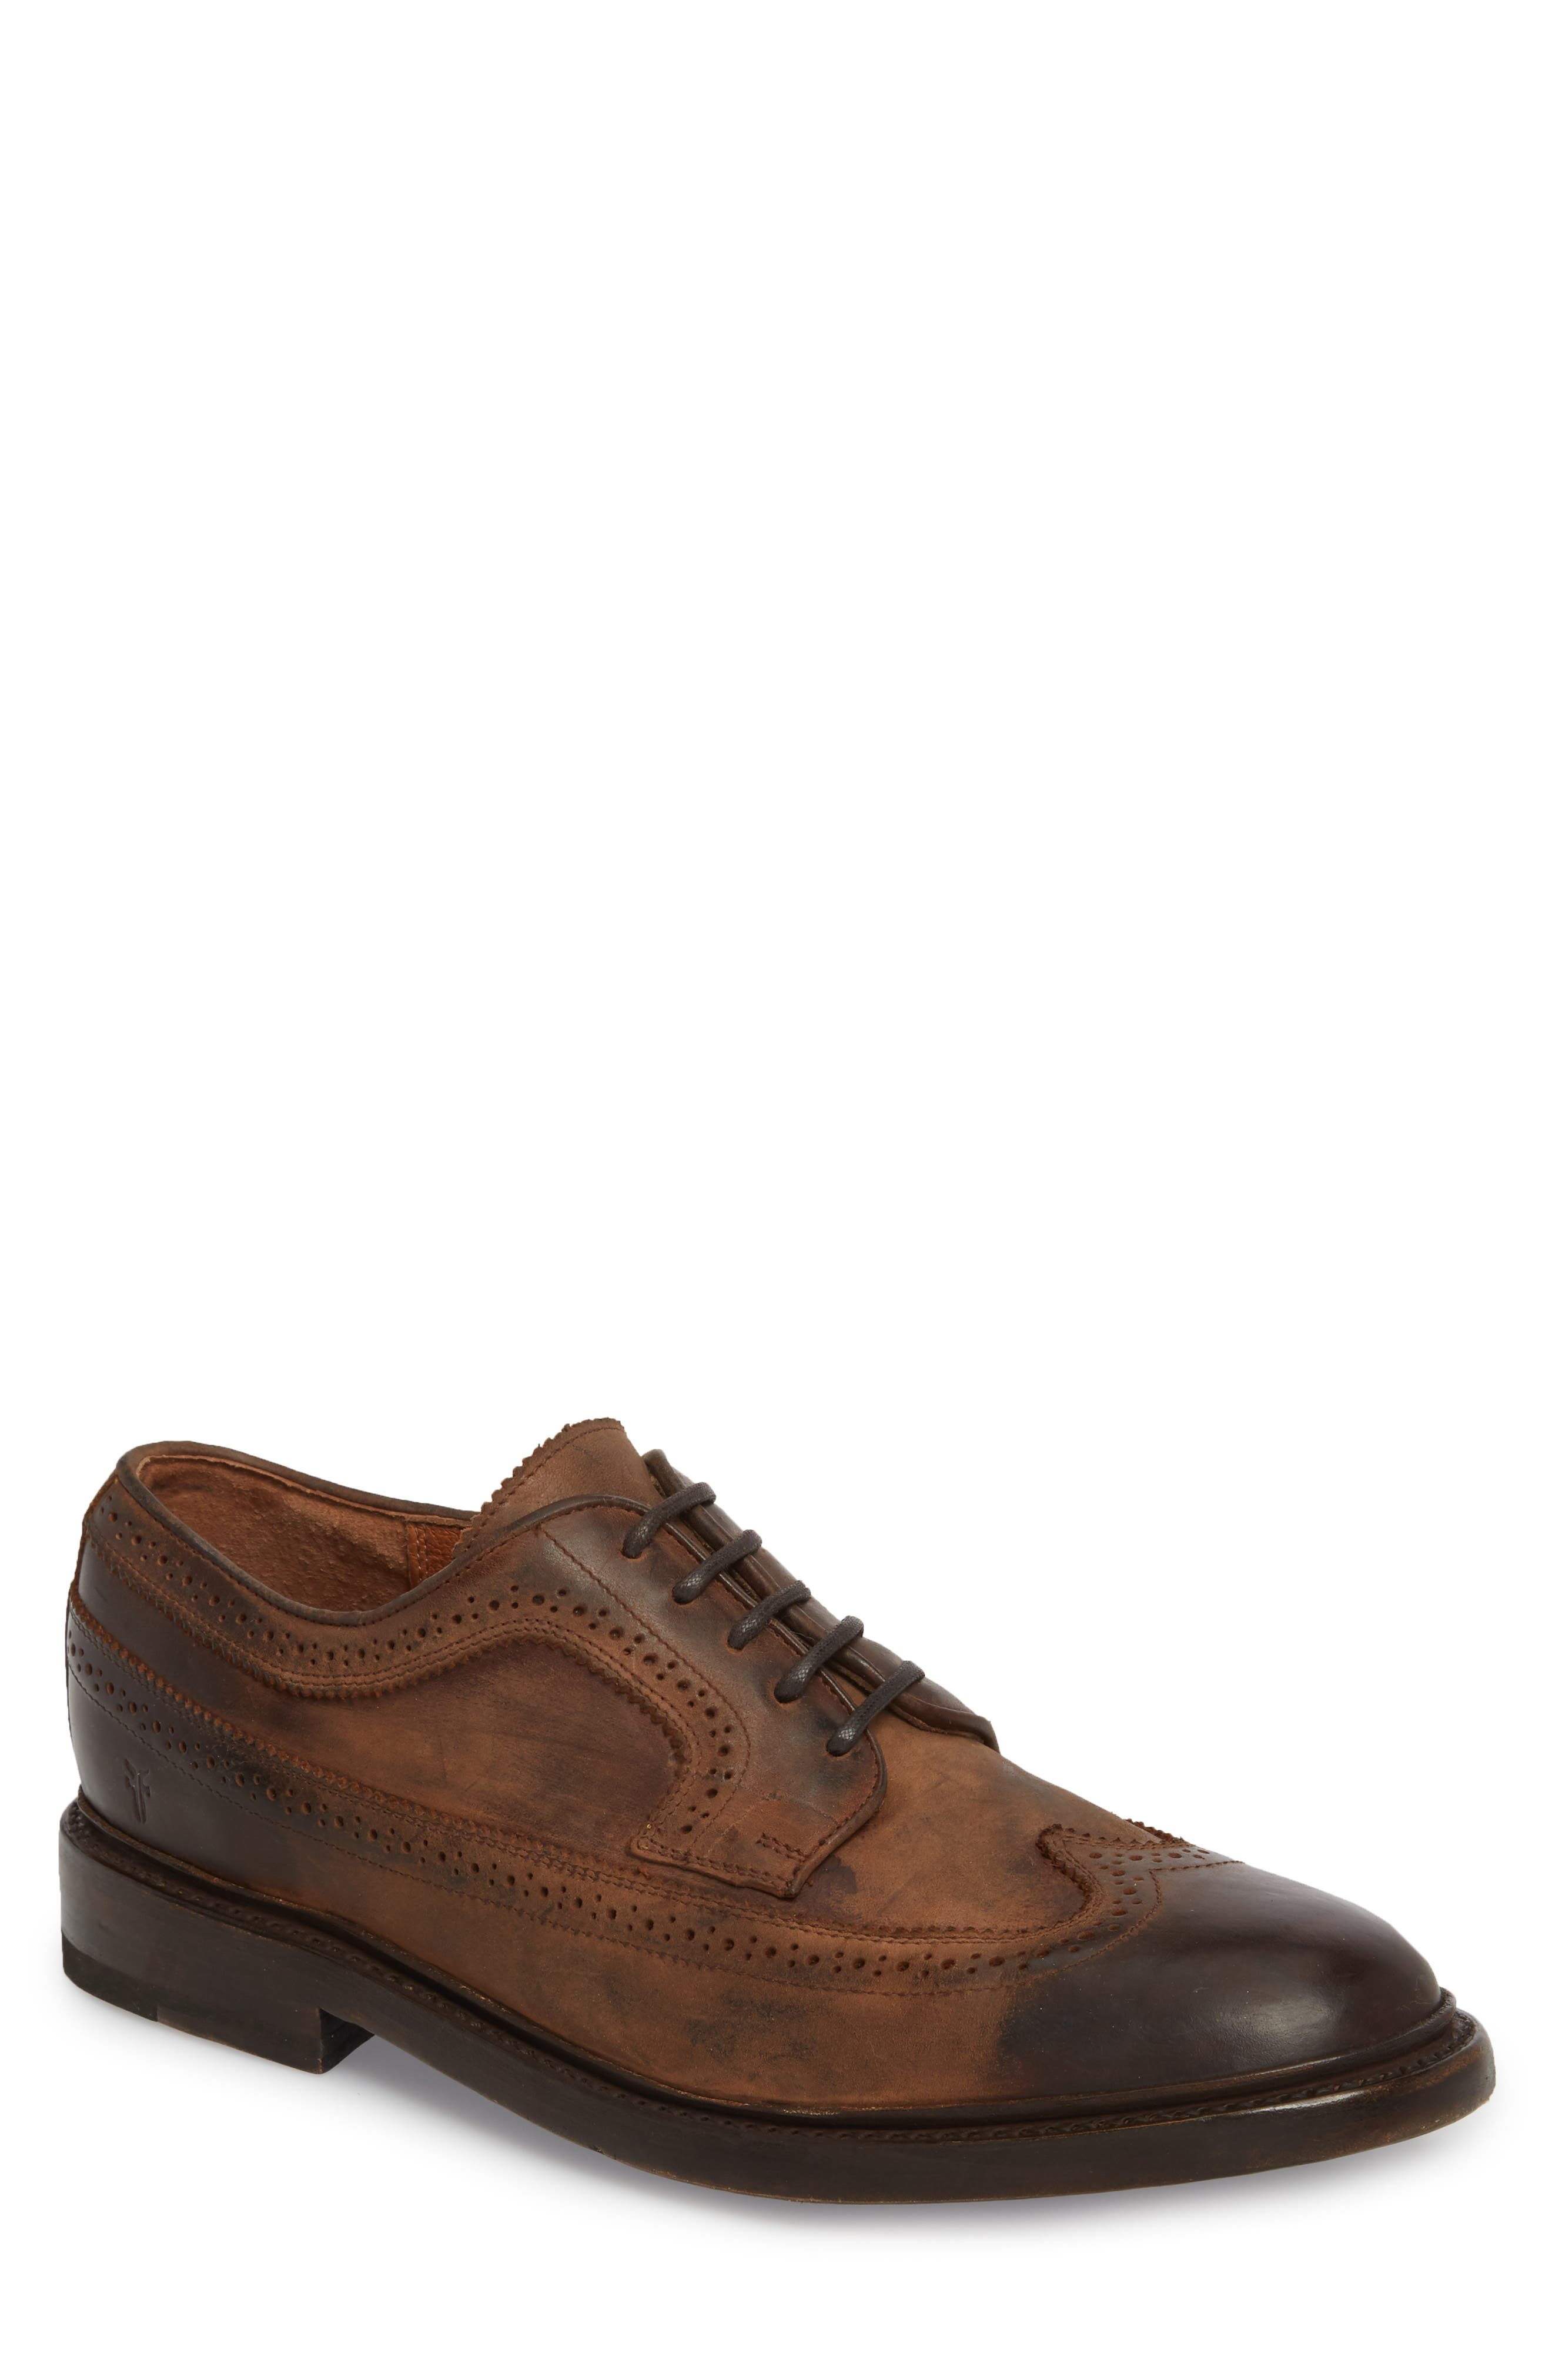 Jones Wingtip,                             Main thumbnail 1, color,                             REDWOOD LEATHER